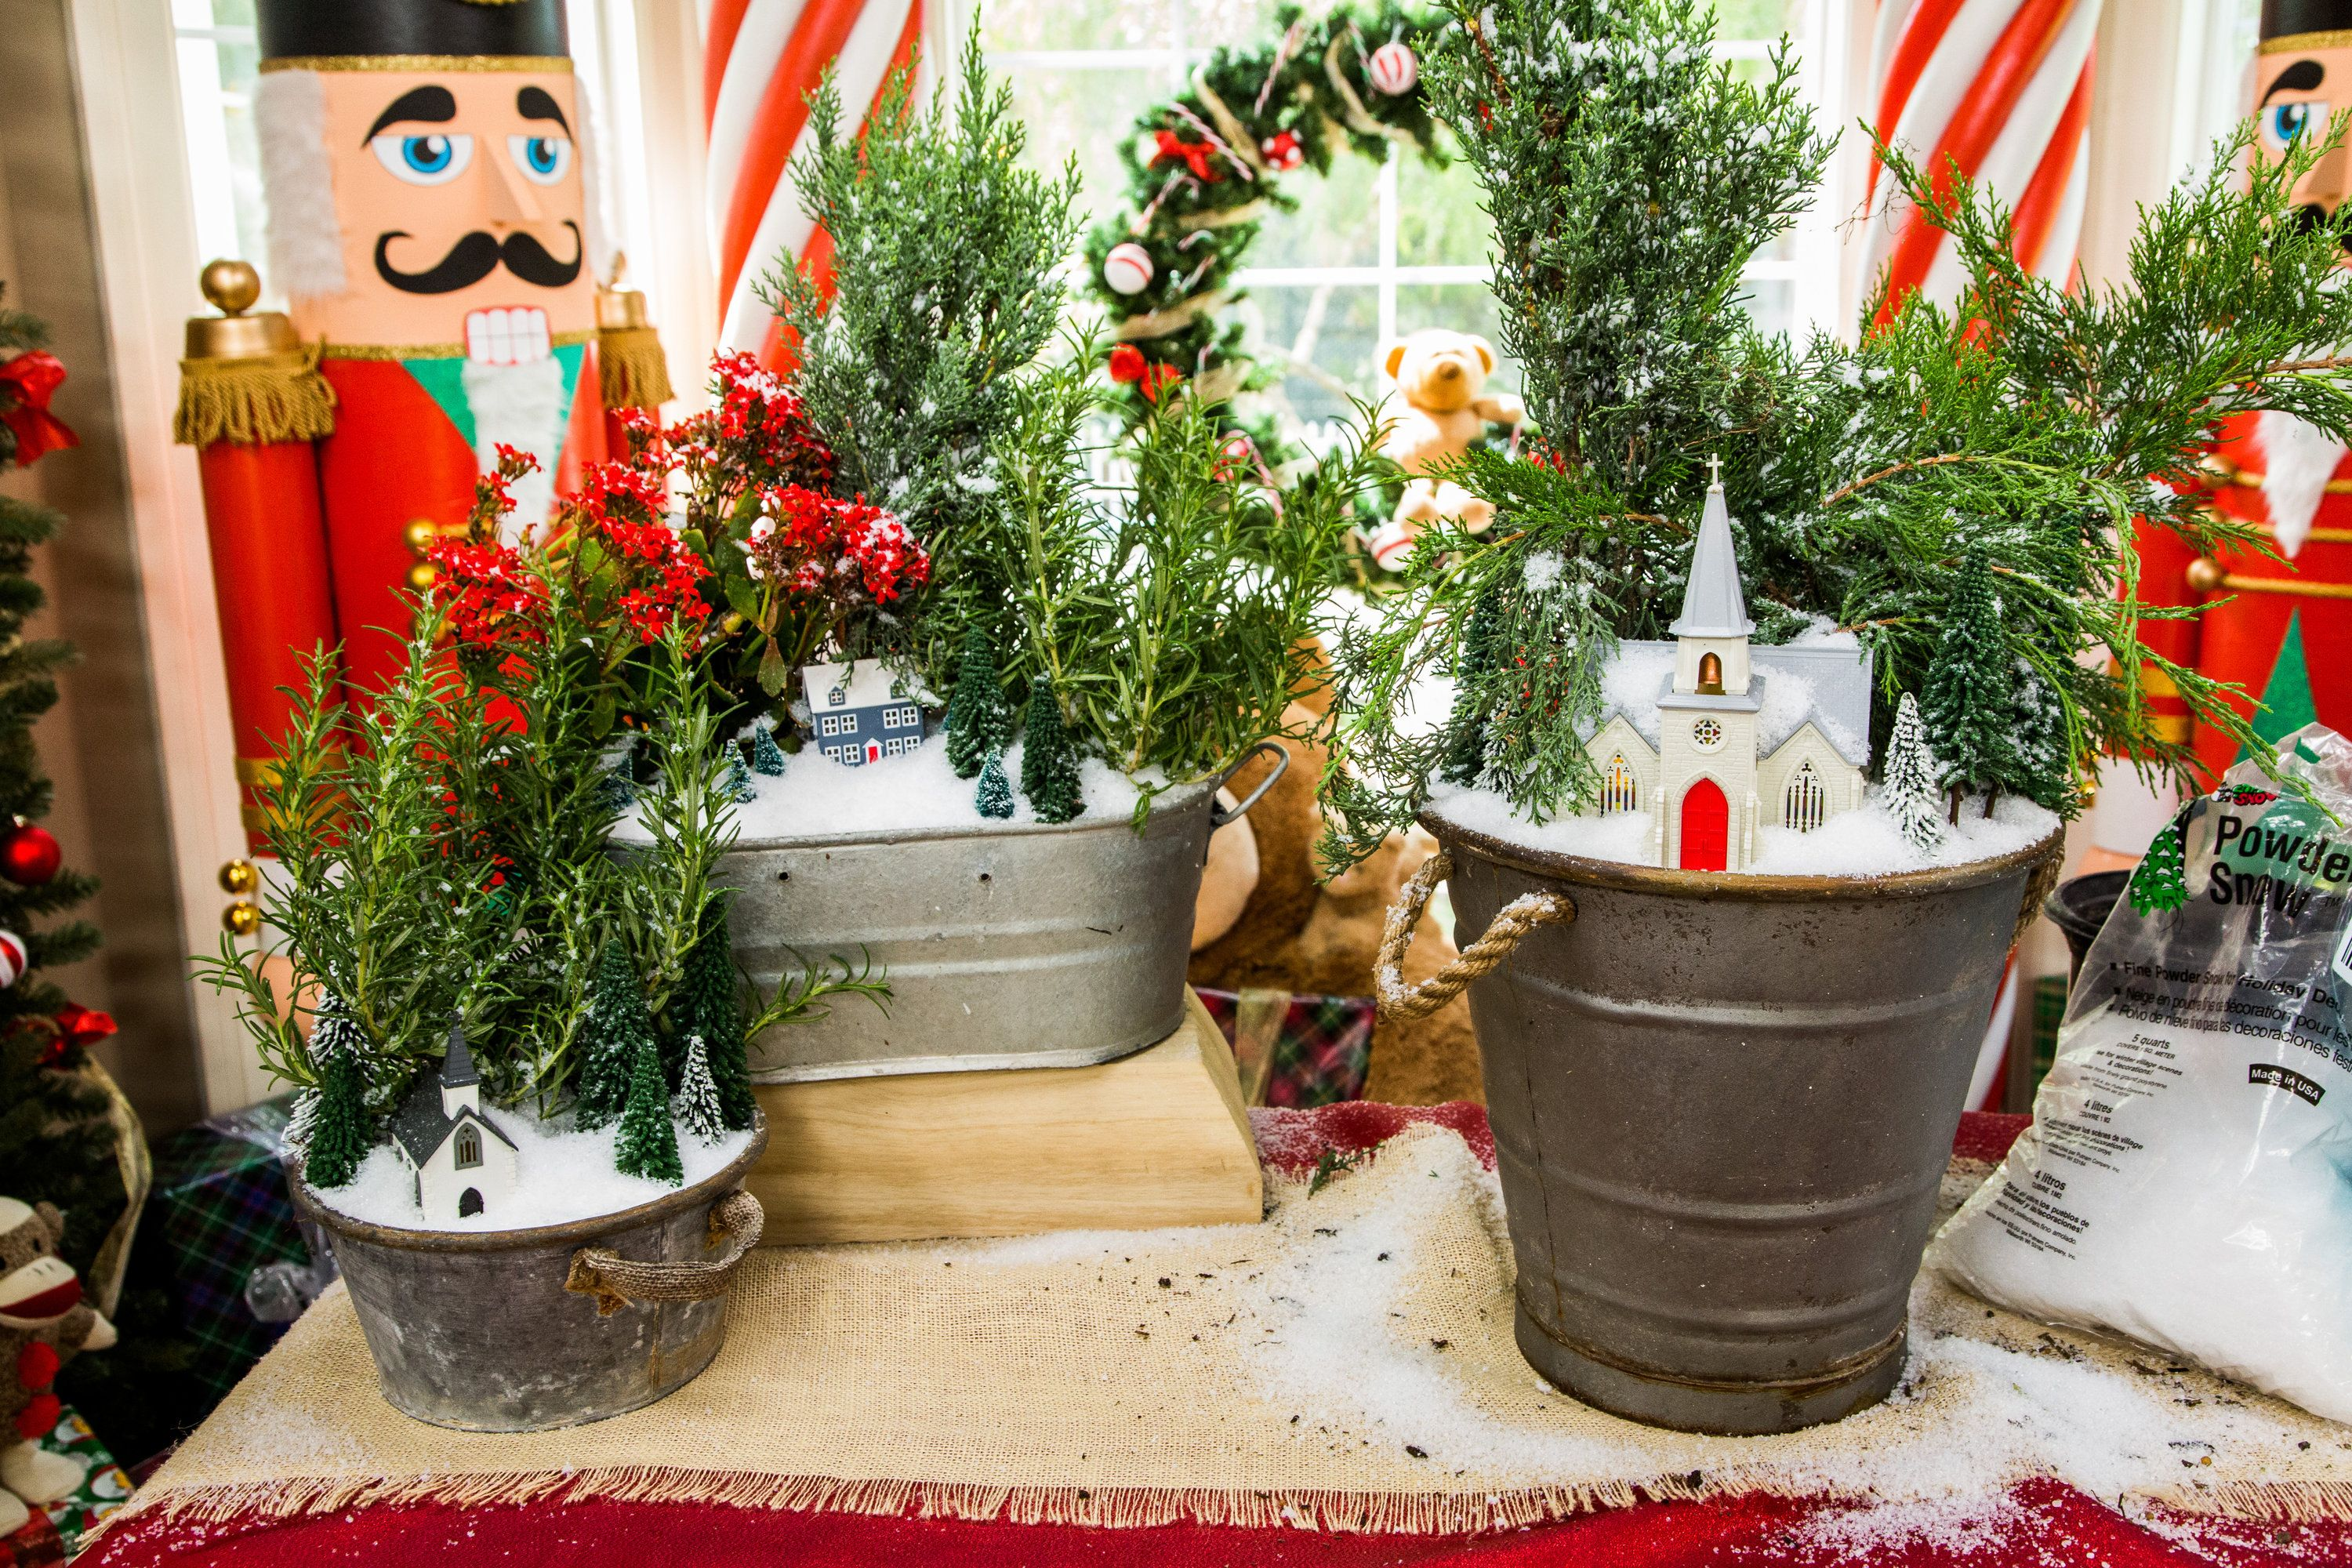 Ken Wingard has a DIY that includes Christmas and plants! DIY ...